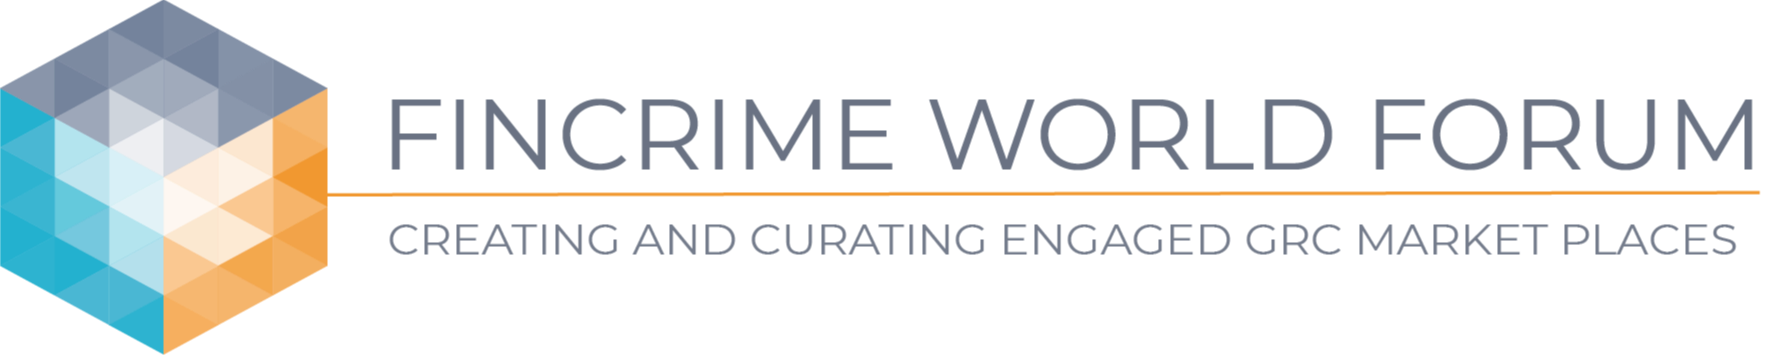 FinCrime World Forum